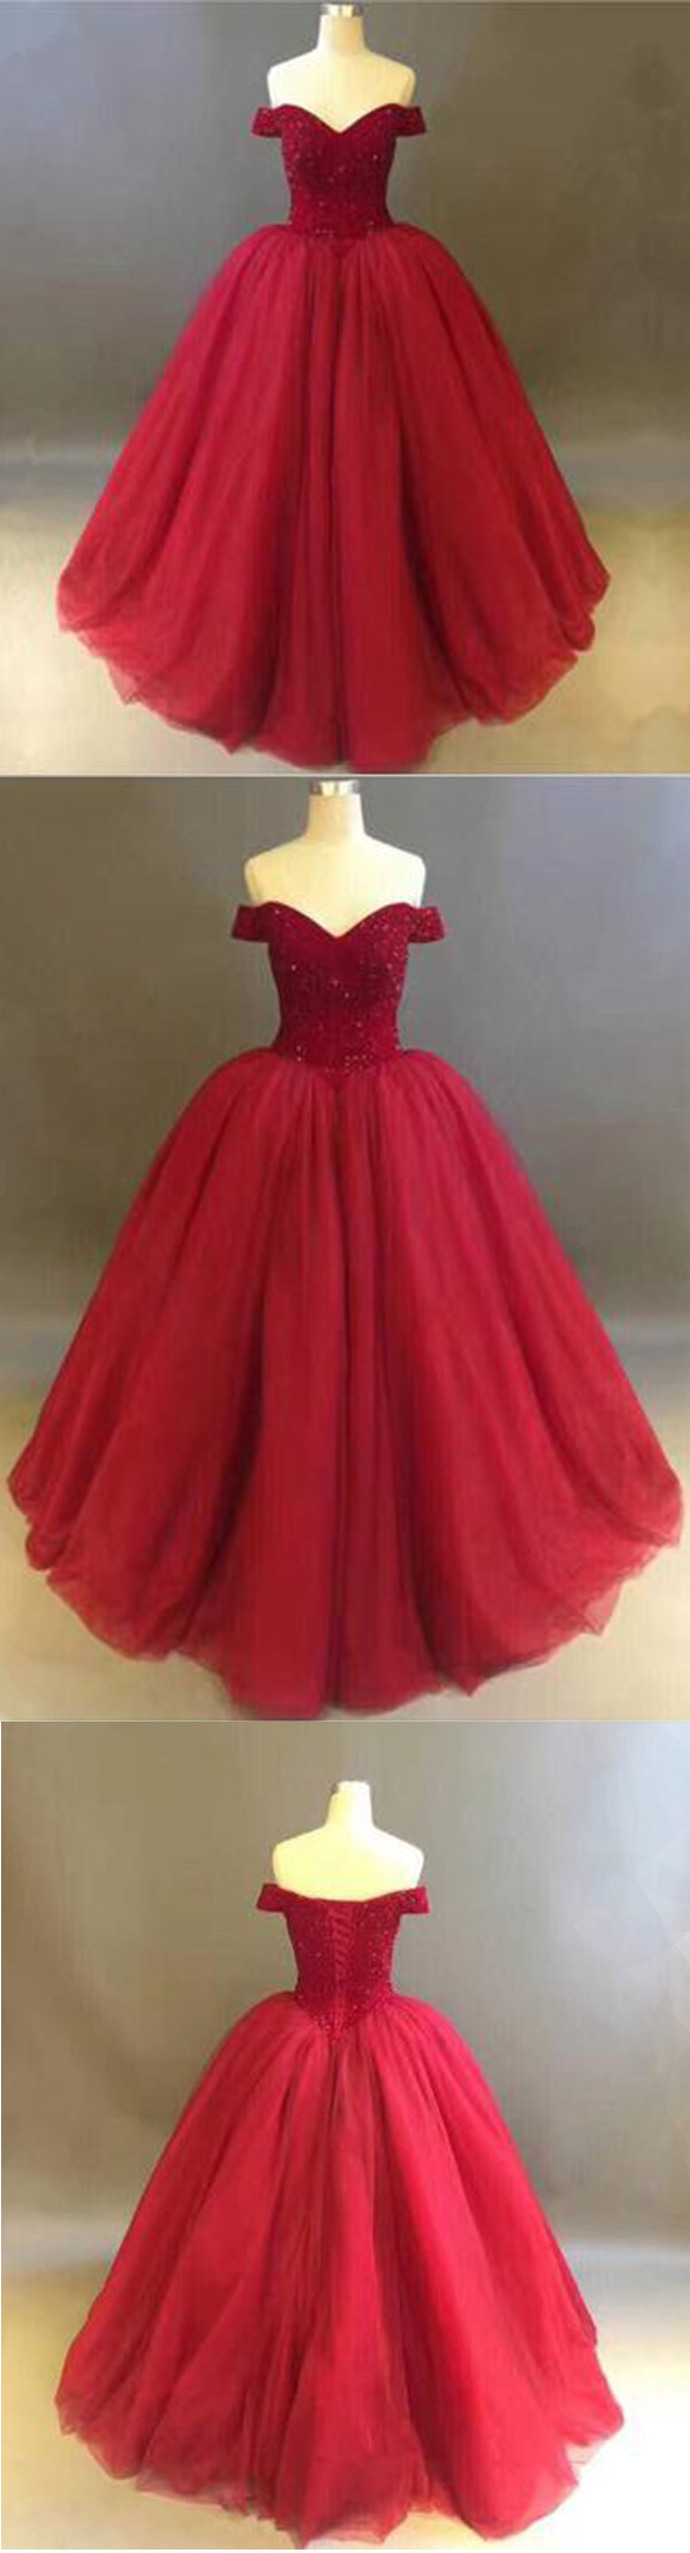 Red tulle strapless floor length off shoulder ball gown, long winter formal